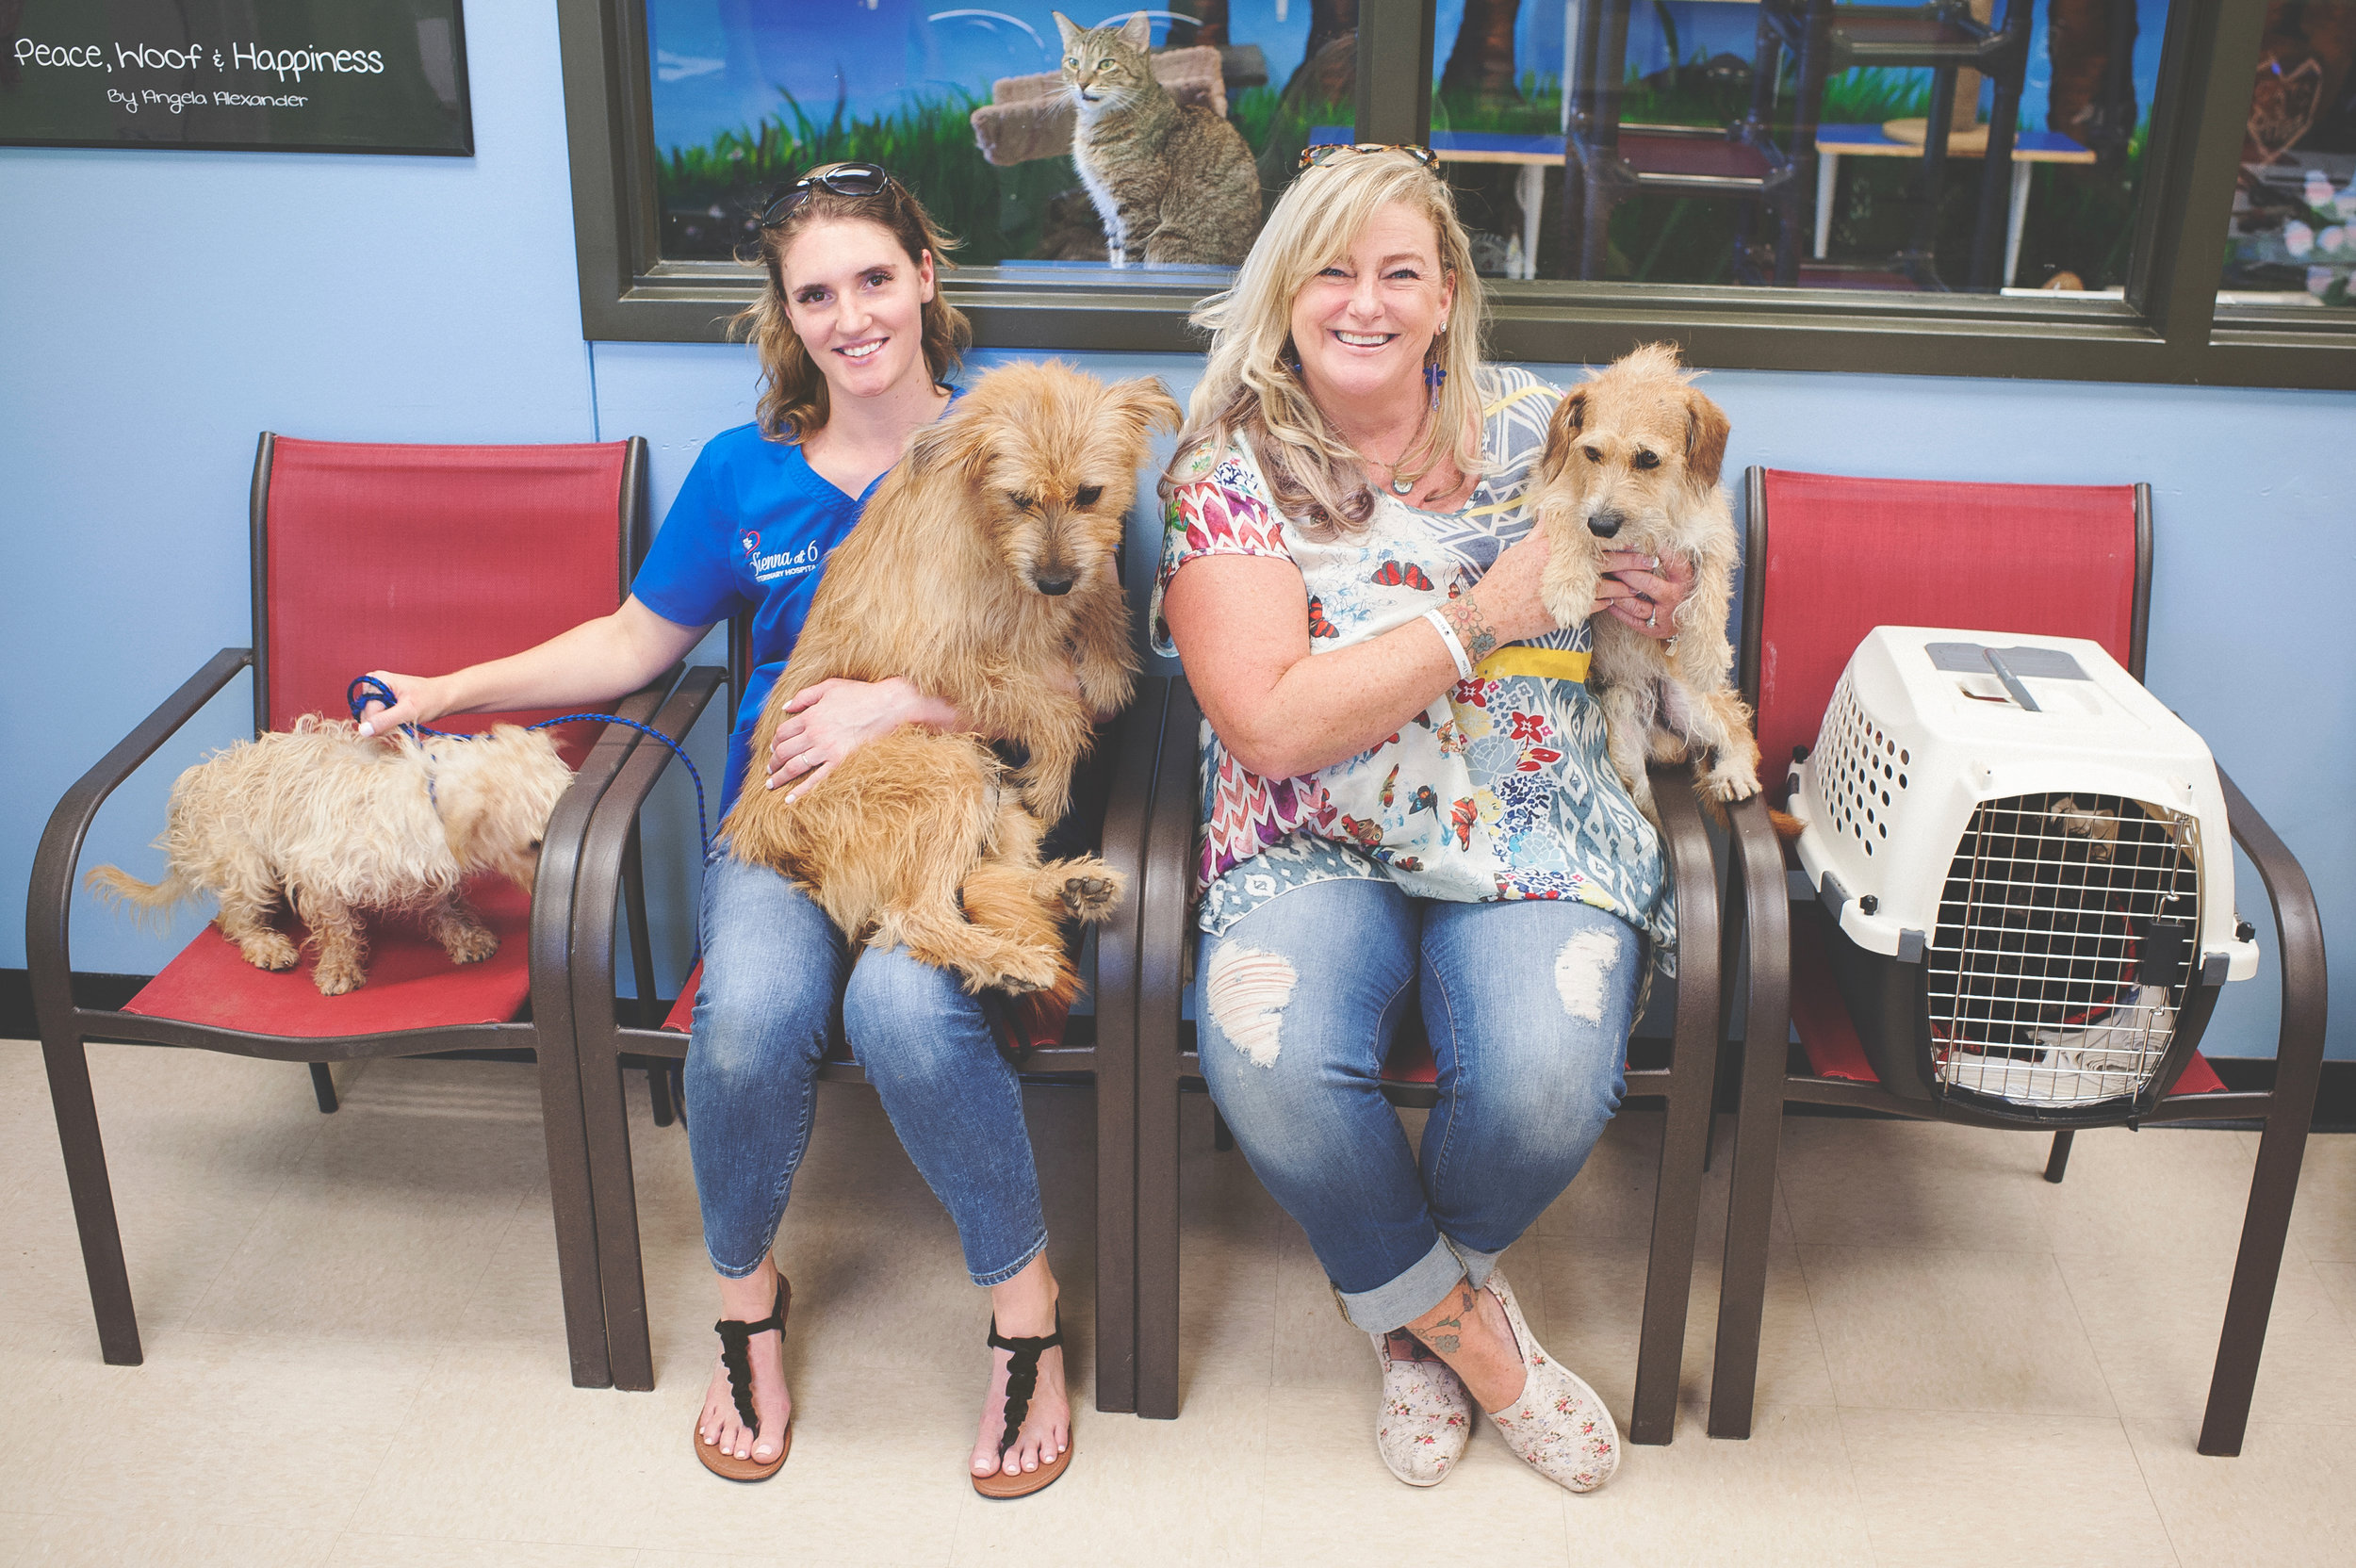 Melissa (left) and Darci (right) showed up to Ft. Bend County Animal Services to pull two specific dogs, but when they arrived the dogs had already been claimed. So they did what they do best... and left with four.